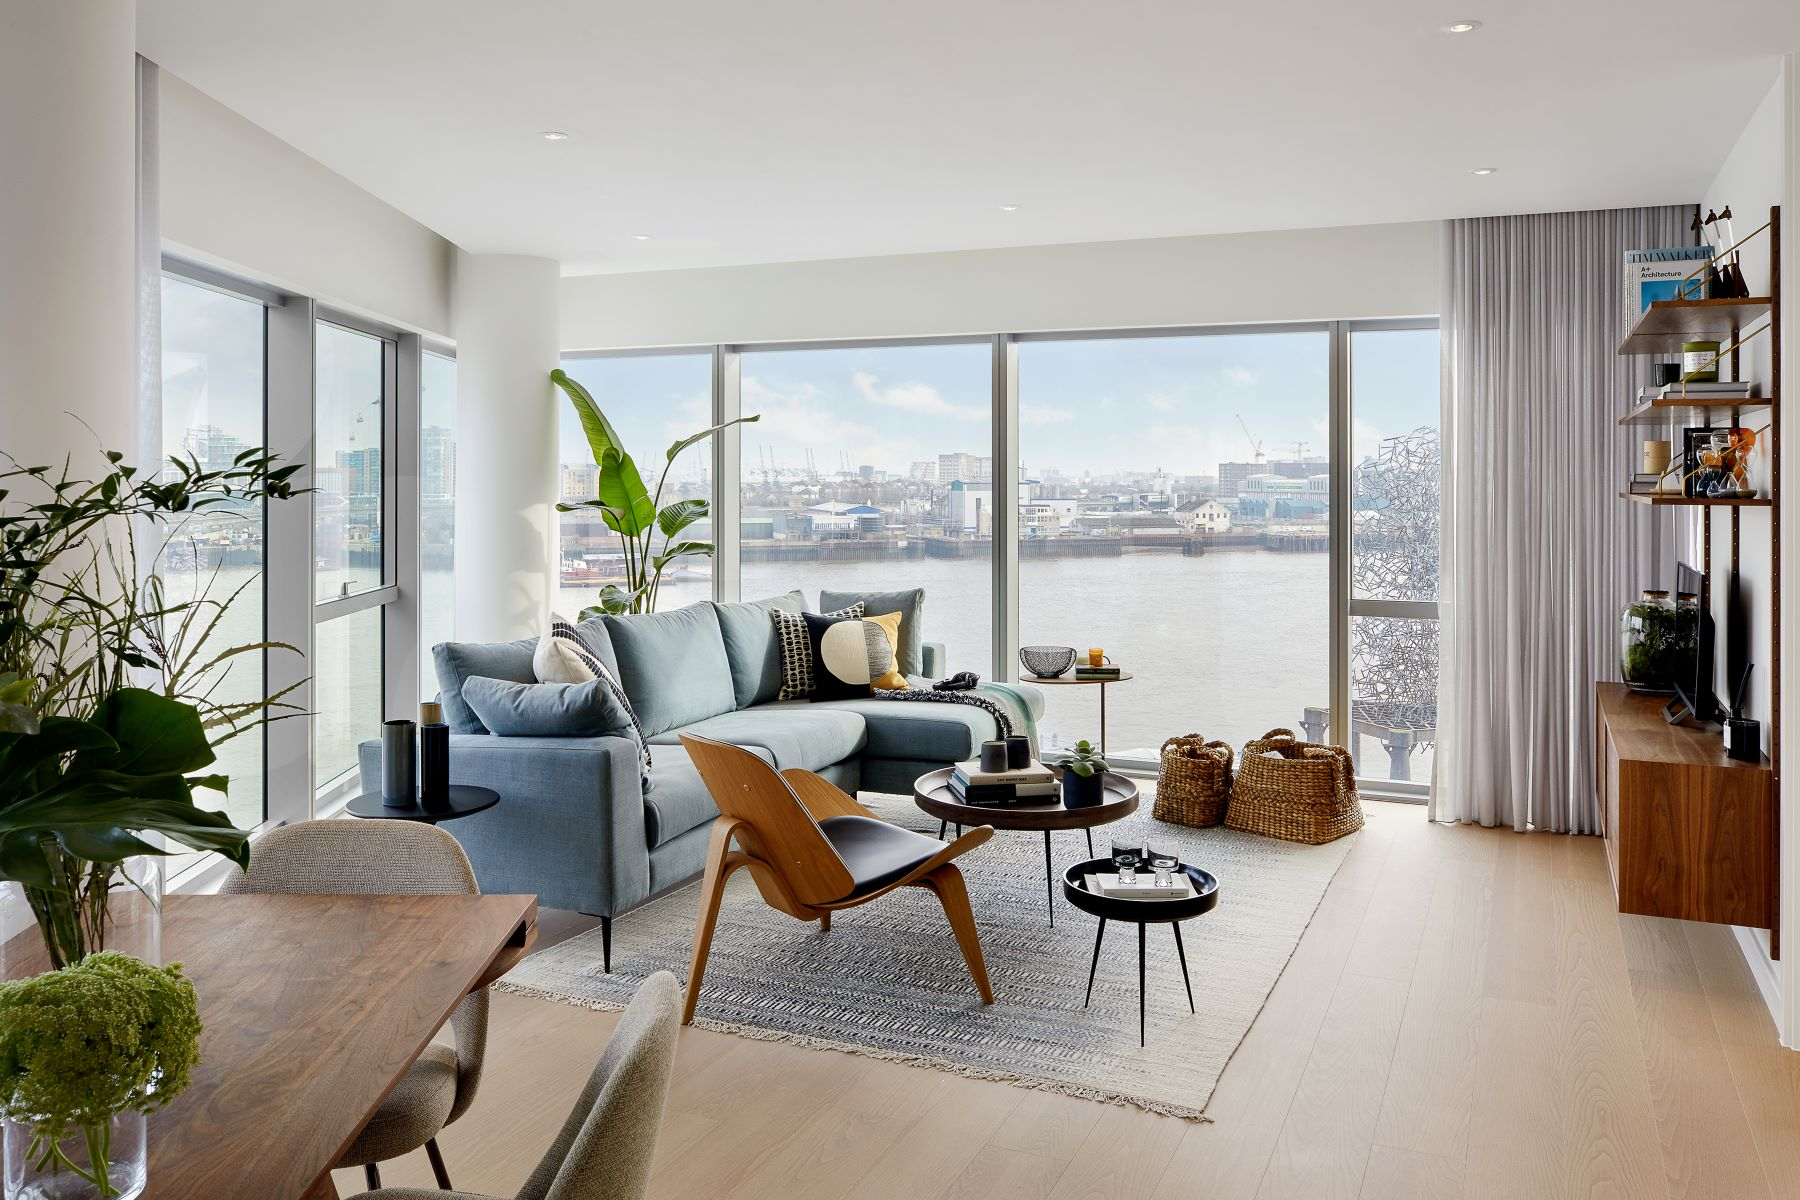 Apartments for Sale at Greenwich Peninsula Building 1 (20.7) Upper Riverside London, England SE10 0SQ United Kingdom